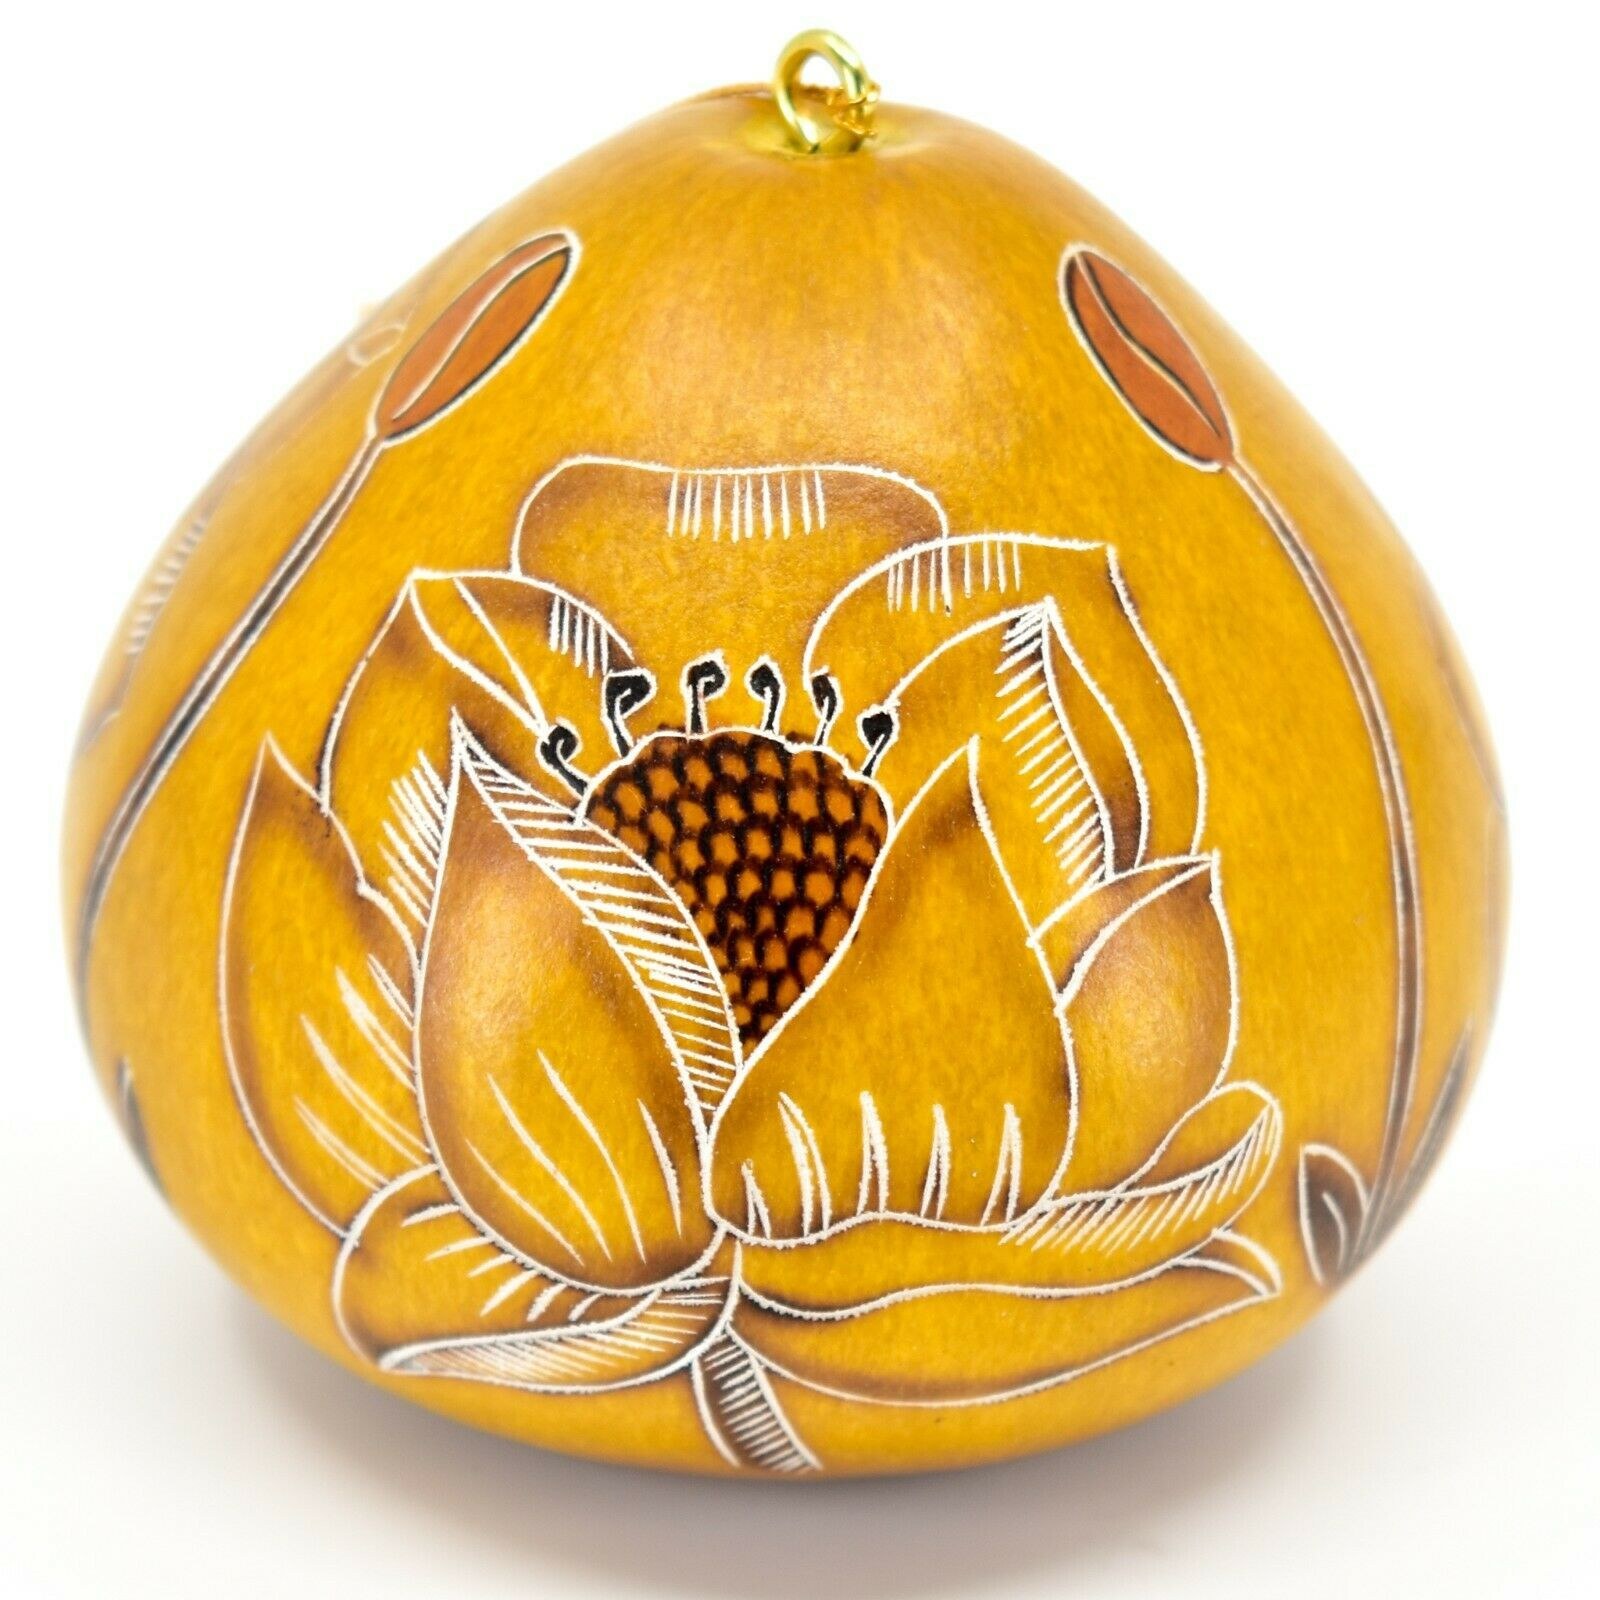 Handcrafted Carved Gourd Art Trollius Flower Floral Ornament Made in Peru